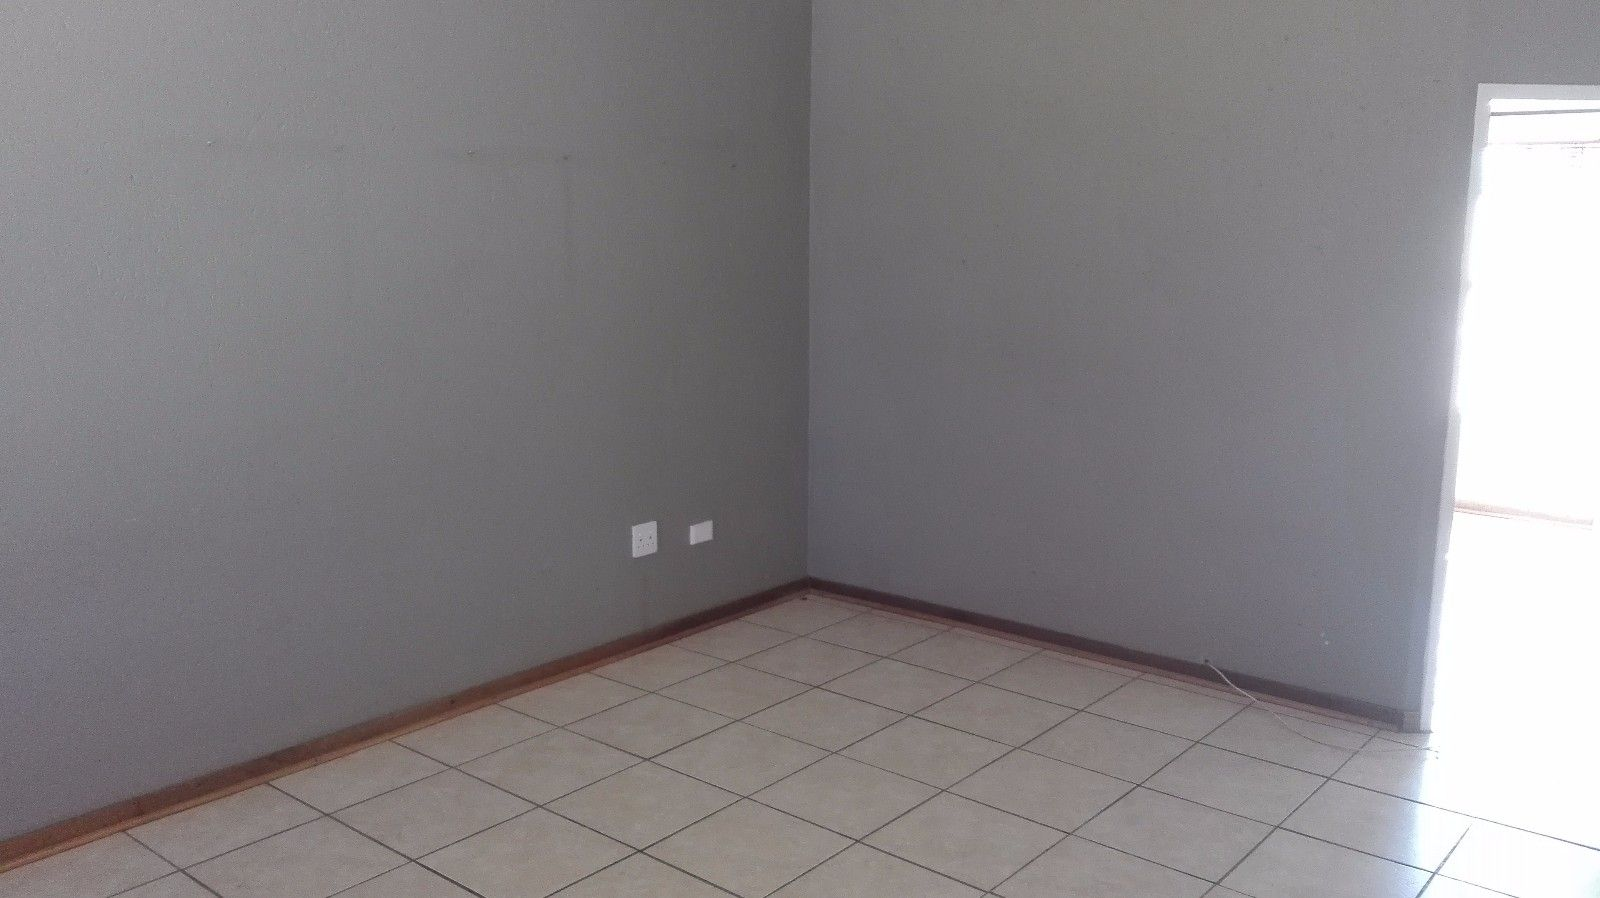 Potchefstroom Central property for sale. Ref No: 13381094. Picture no 7